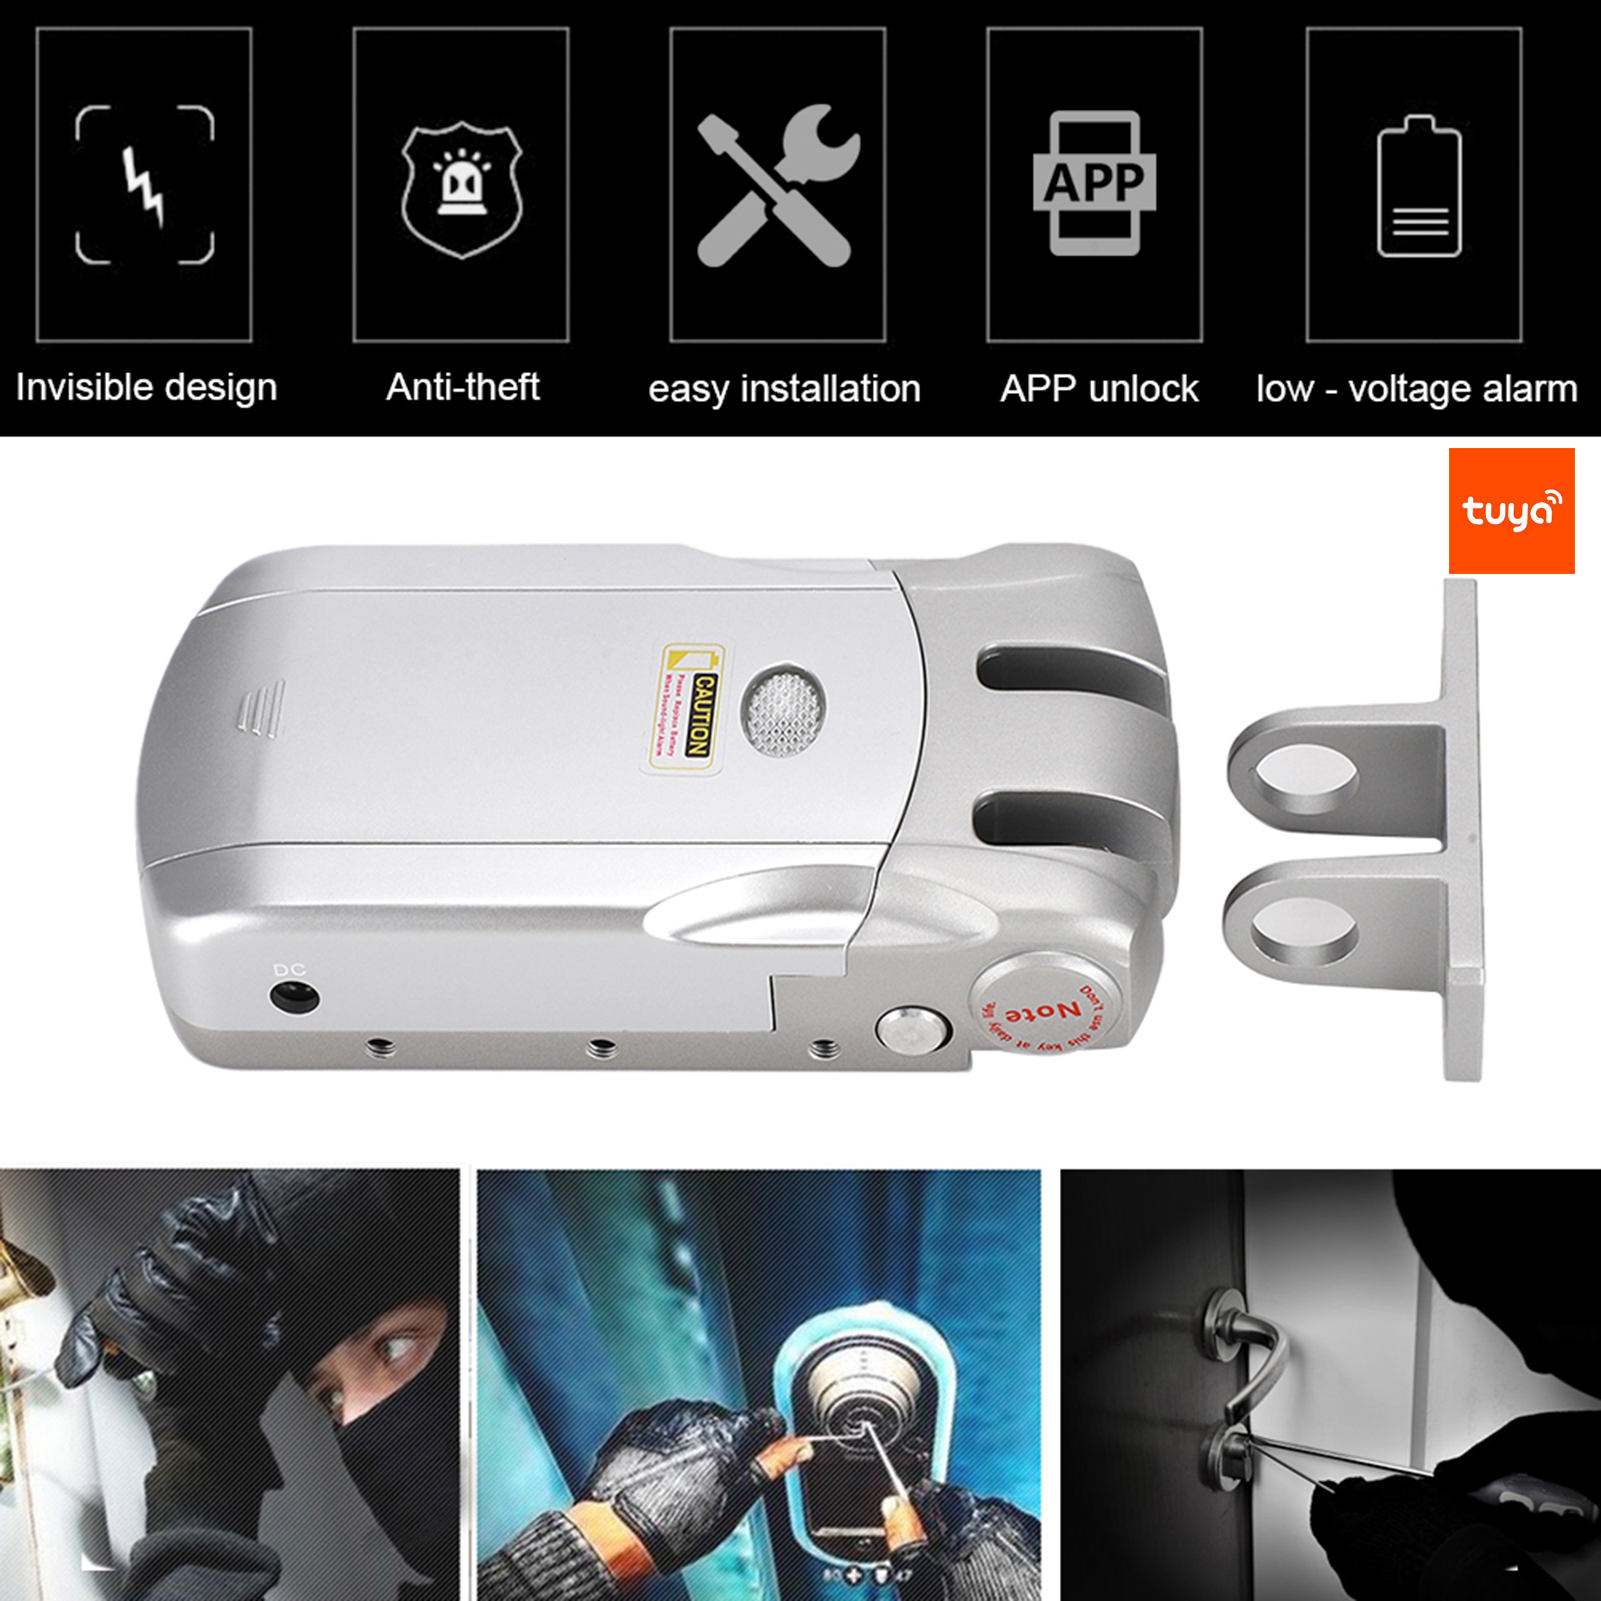 433Mhz-WIFI-Wireless-Door-Lock-Remote-Control-USB-Charging-For-Home-Security miniature 15